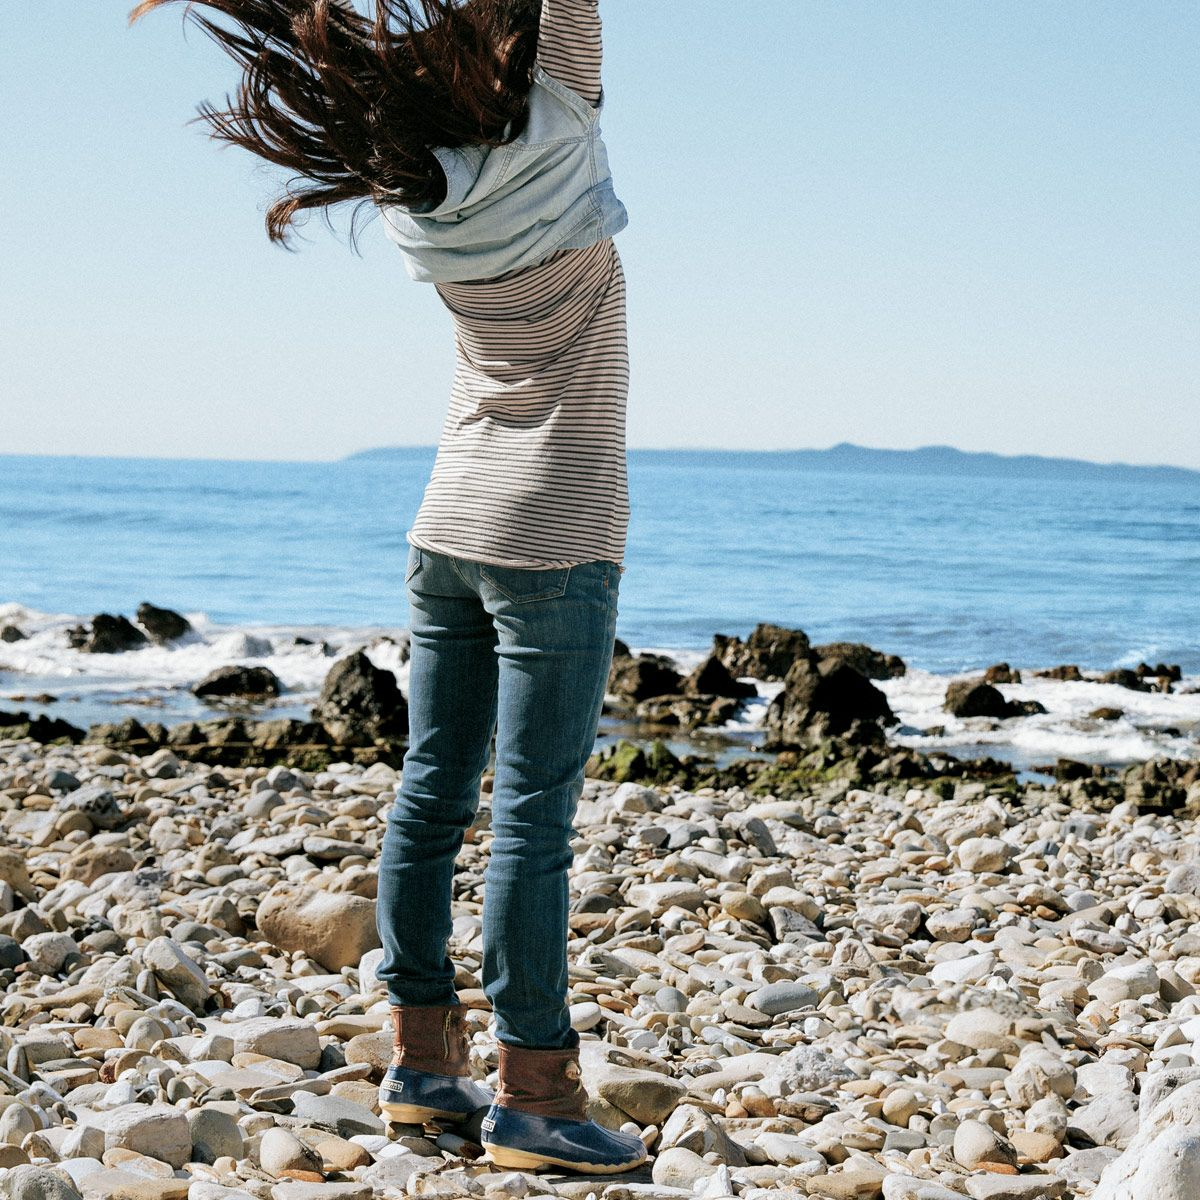 Embrace autumn's crisp, salty air, and the excuse to freshen your wardrobe with seasonal Sperrys and adventurous trends. #duckboots